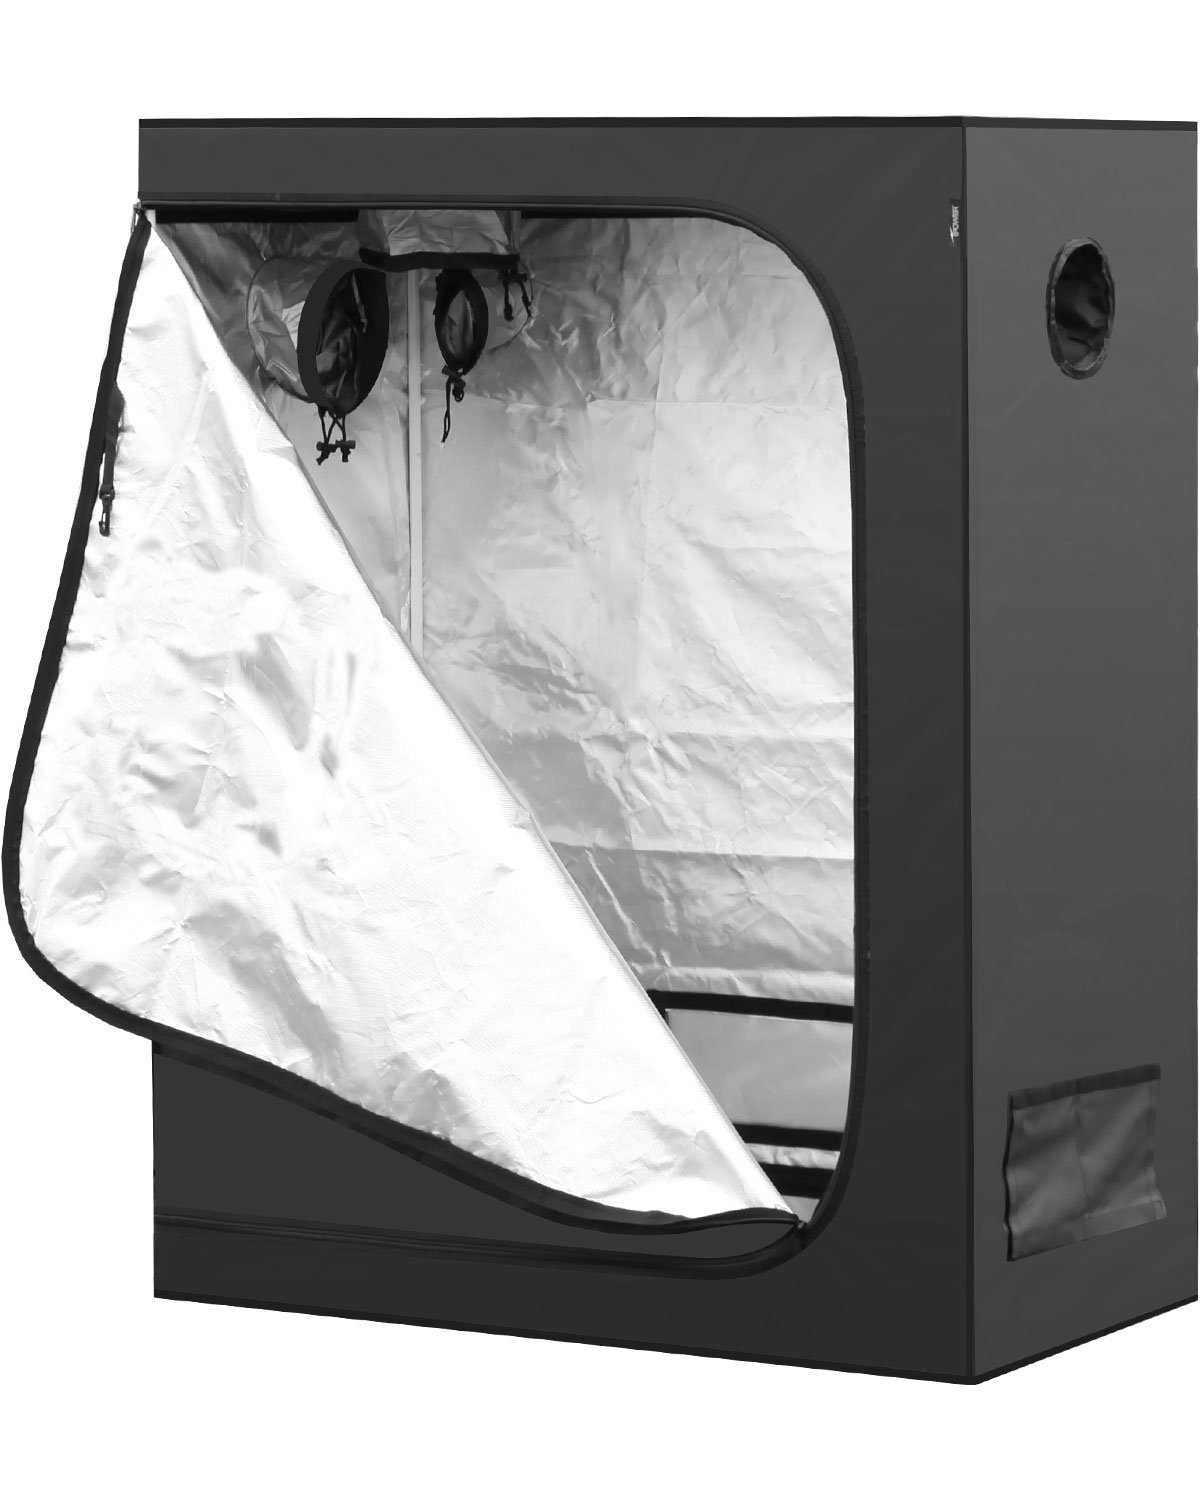 iPower 48''x24''x60'' Hydroponic Water-Resistant Grow Tent with Removable Floor Tray for Indoor Seedling Plant Growing, 2'x4' by iPower